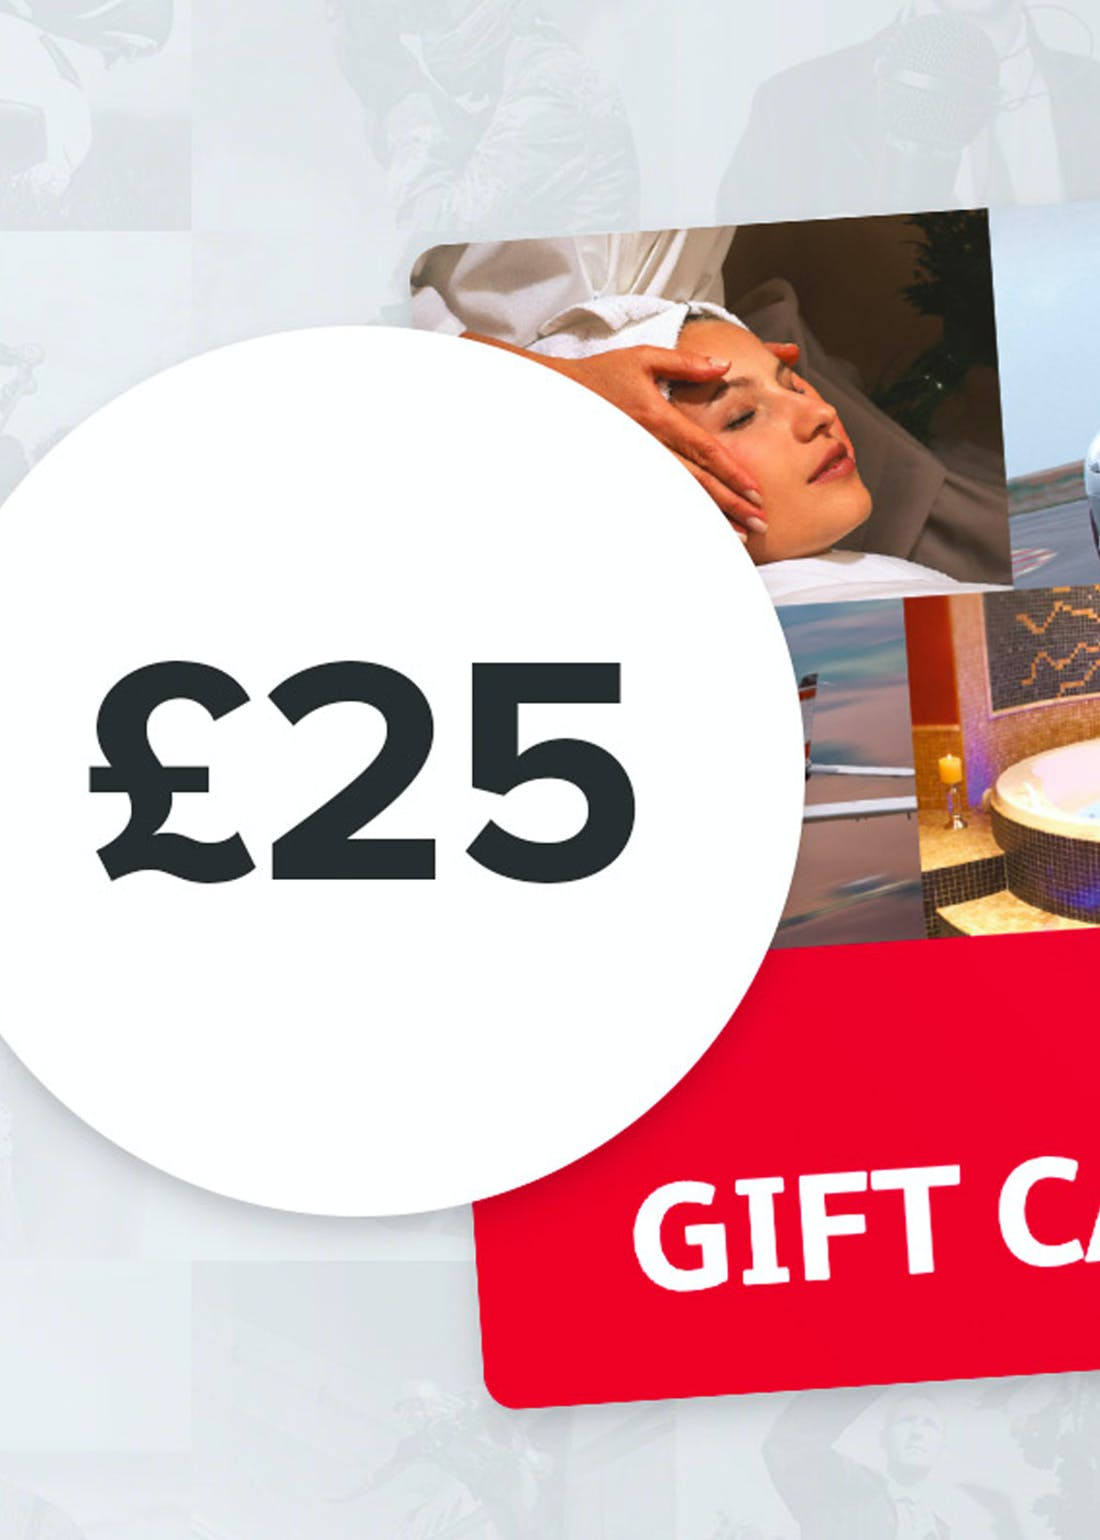 Virgin Experience Days £25 Gift Card